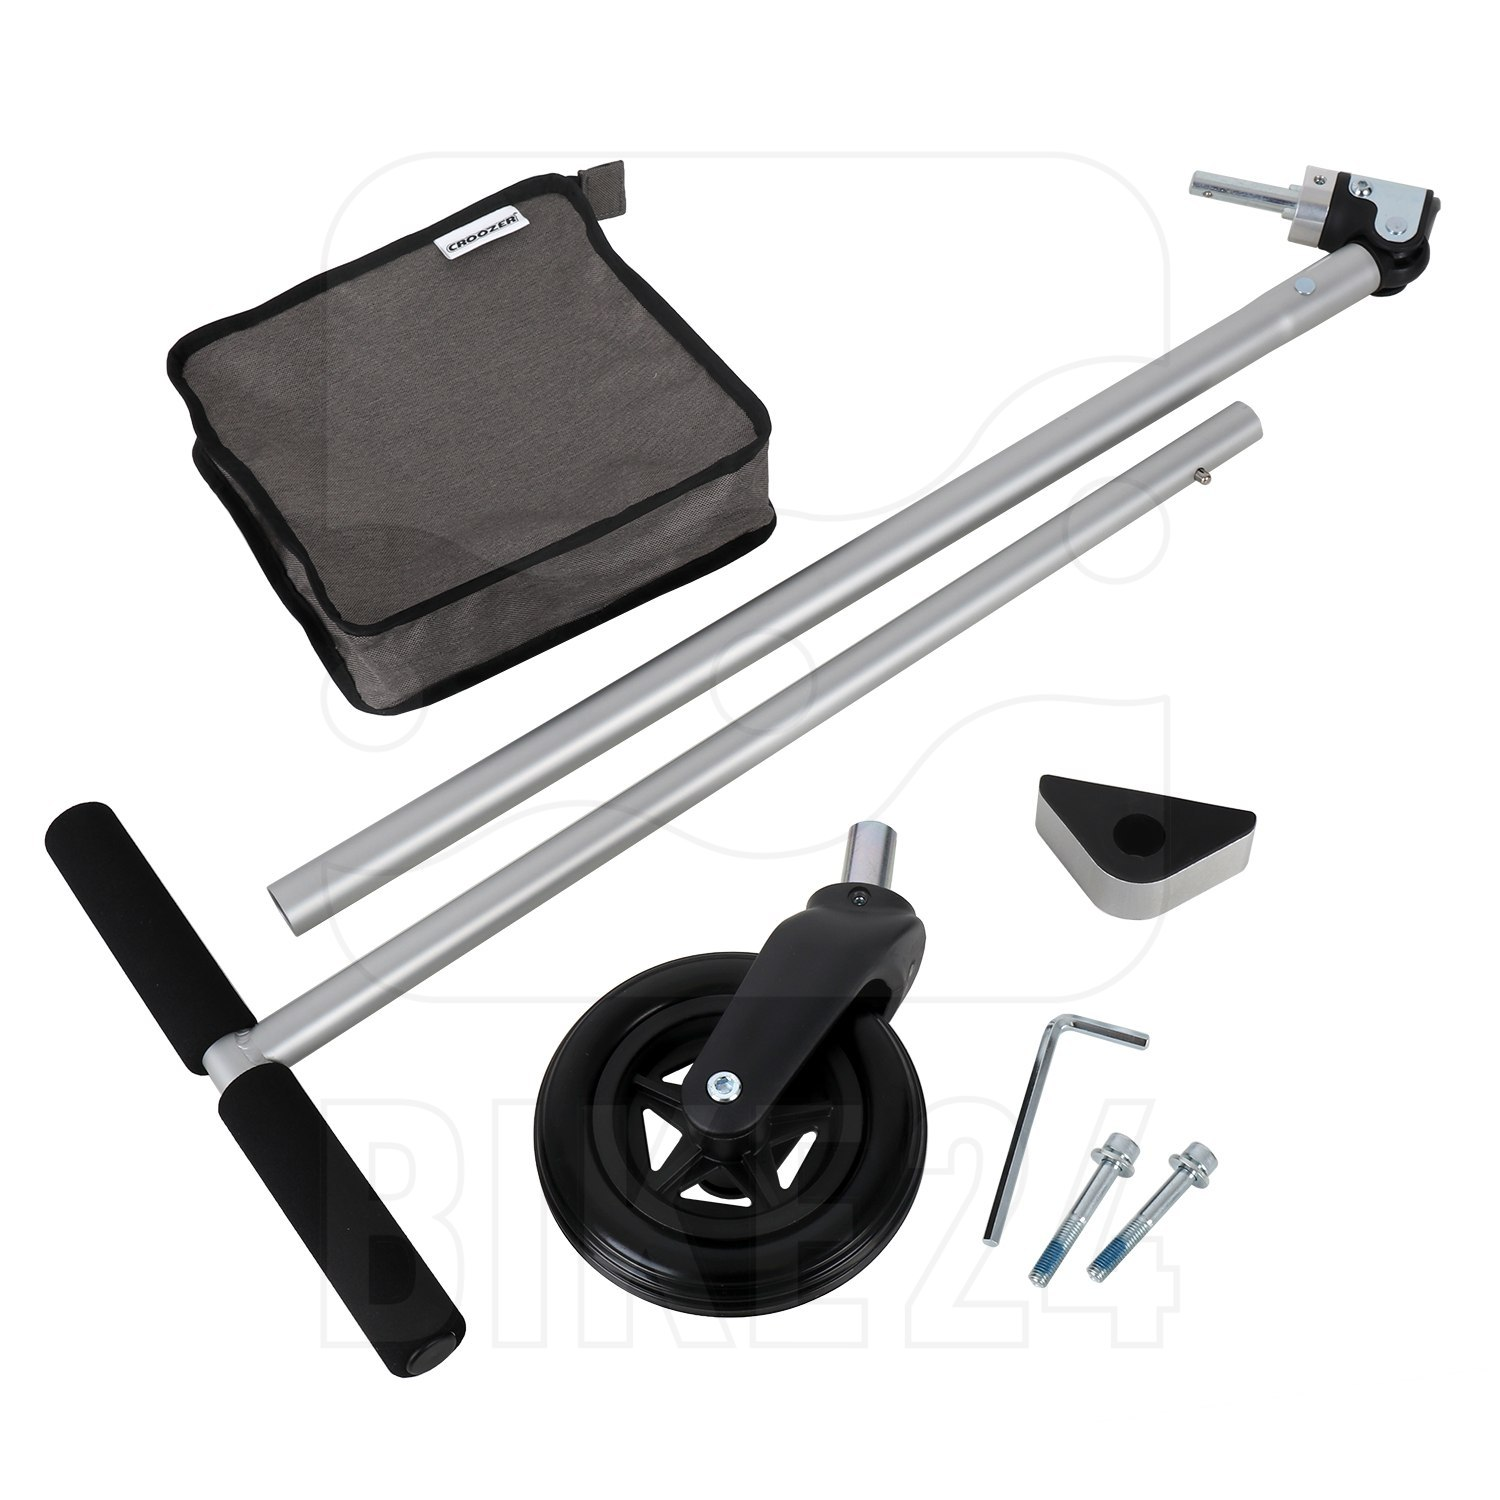 Picture of Croozer Handcart Kit for Cargo Trailer